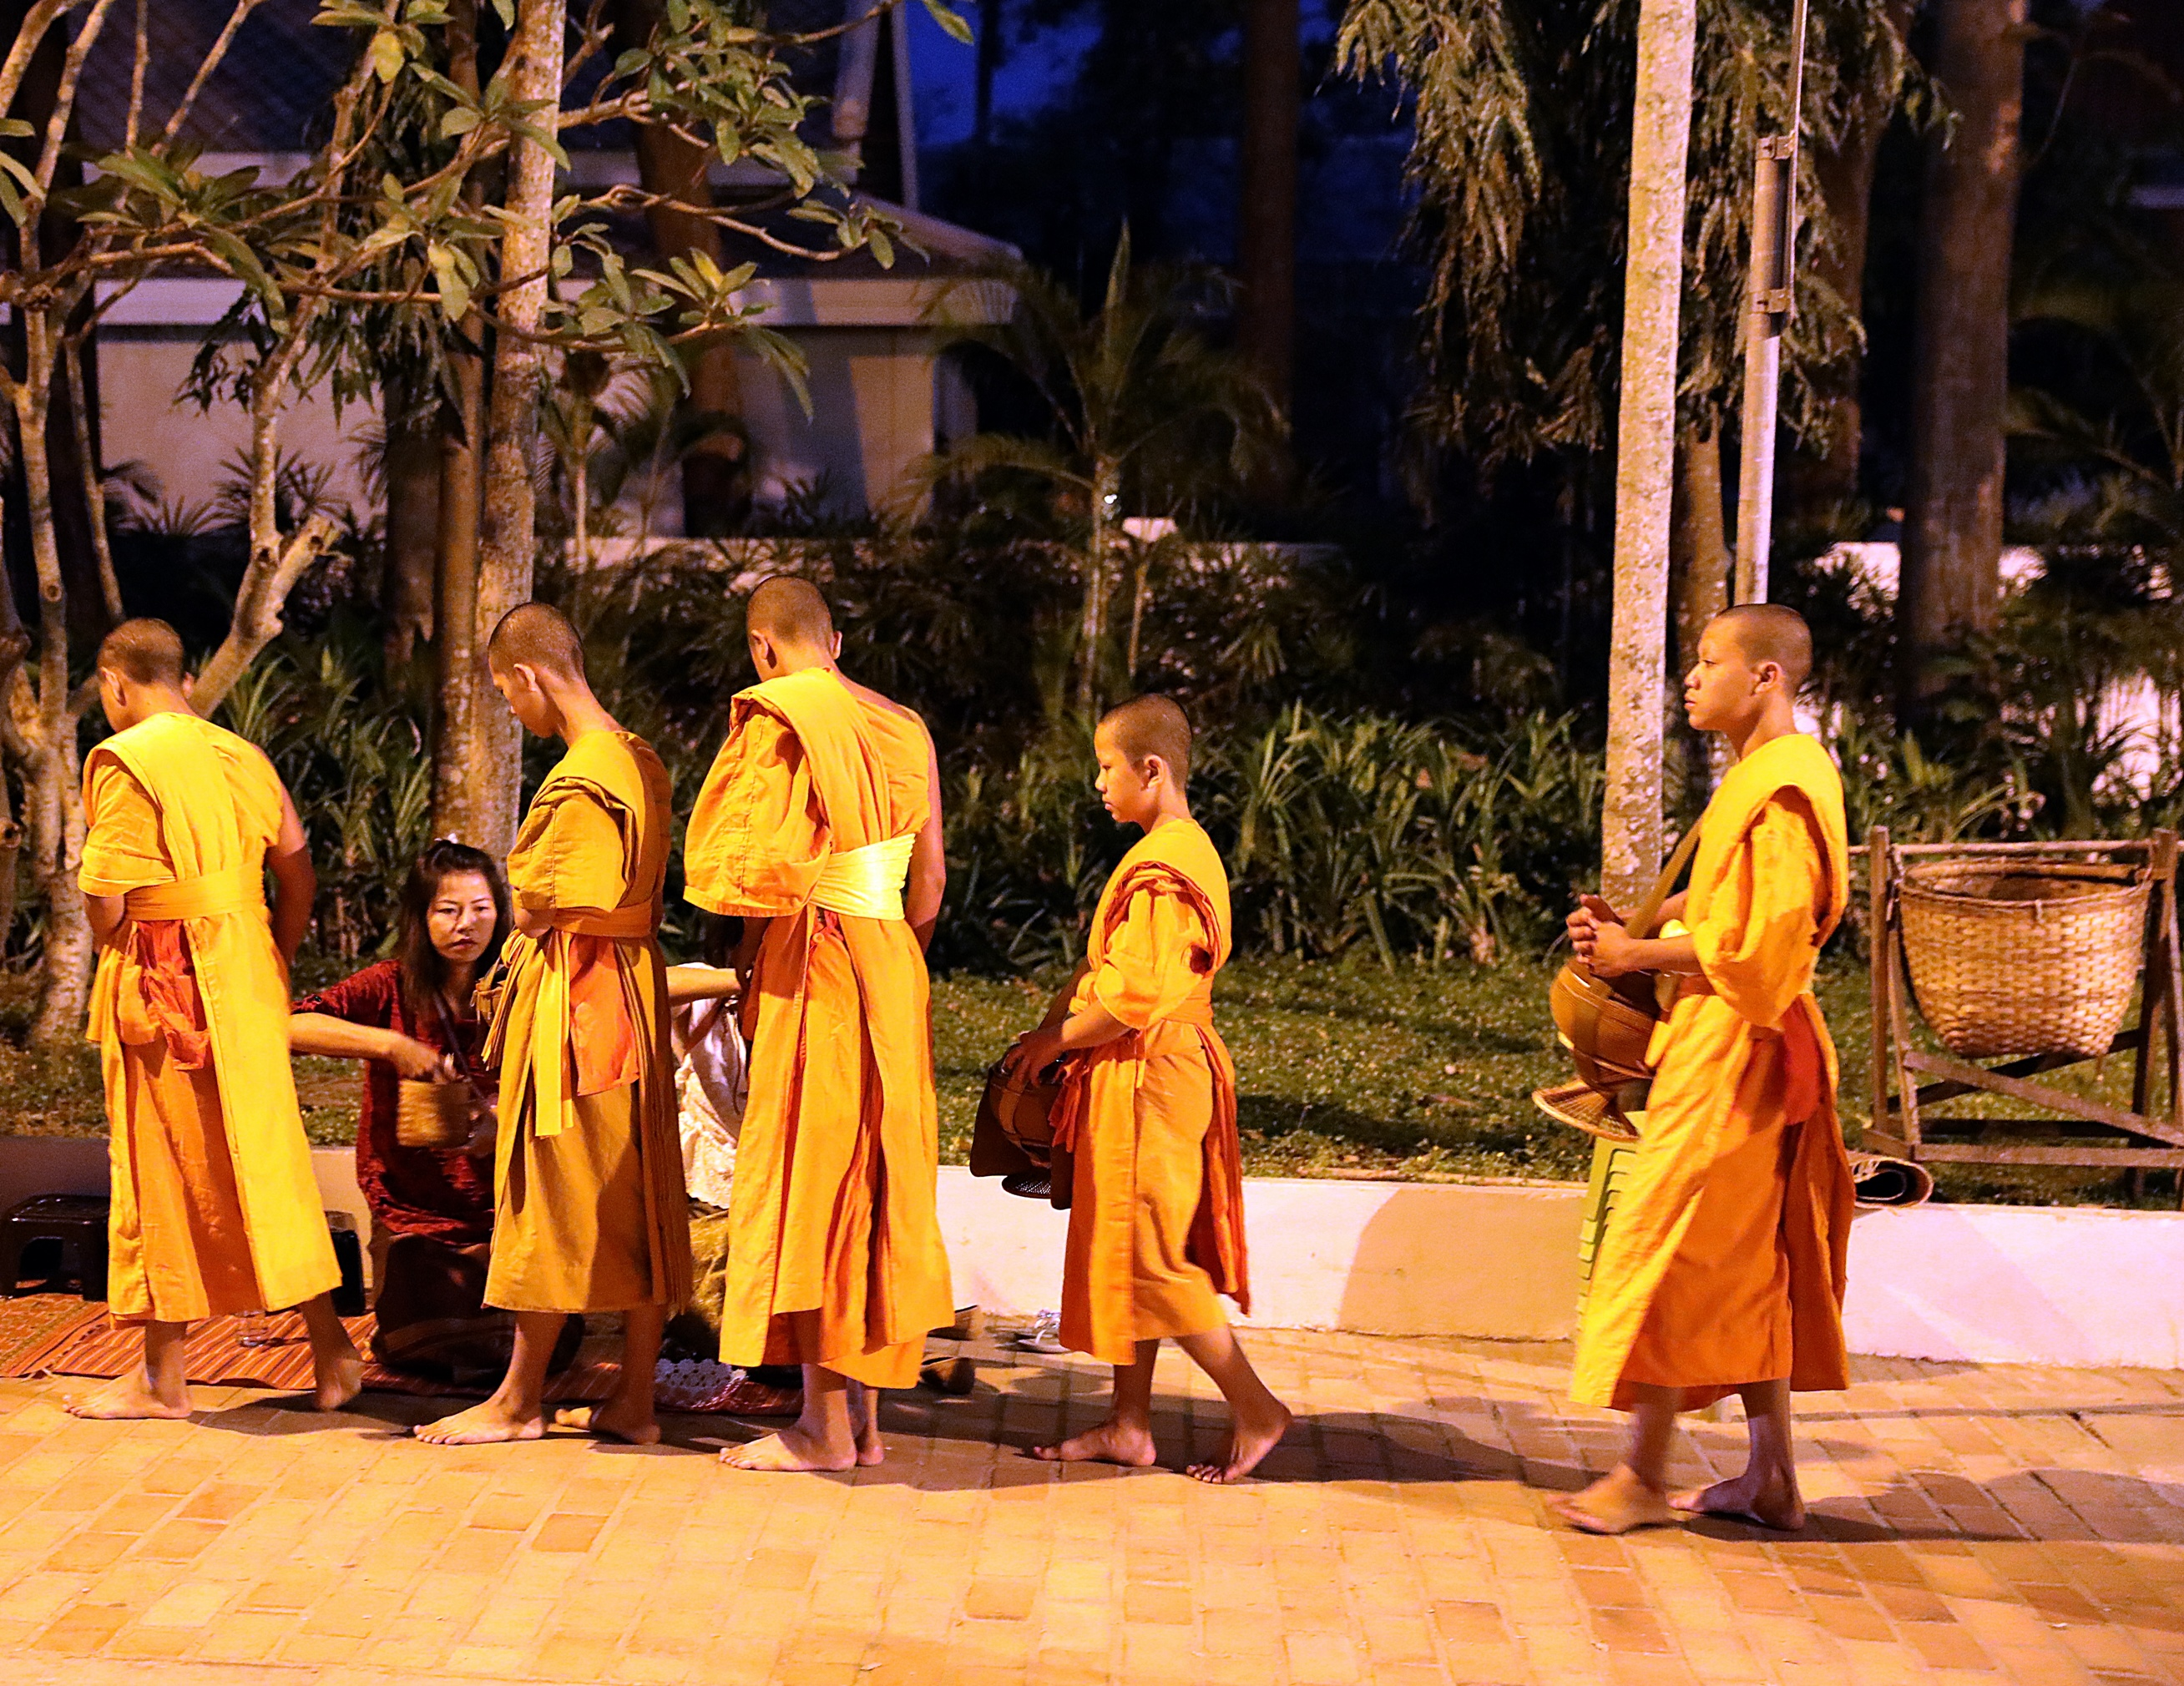 Alms Collection Ceremony, Luang Prabang